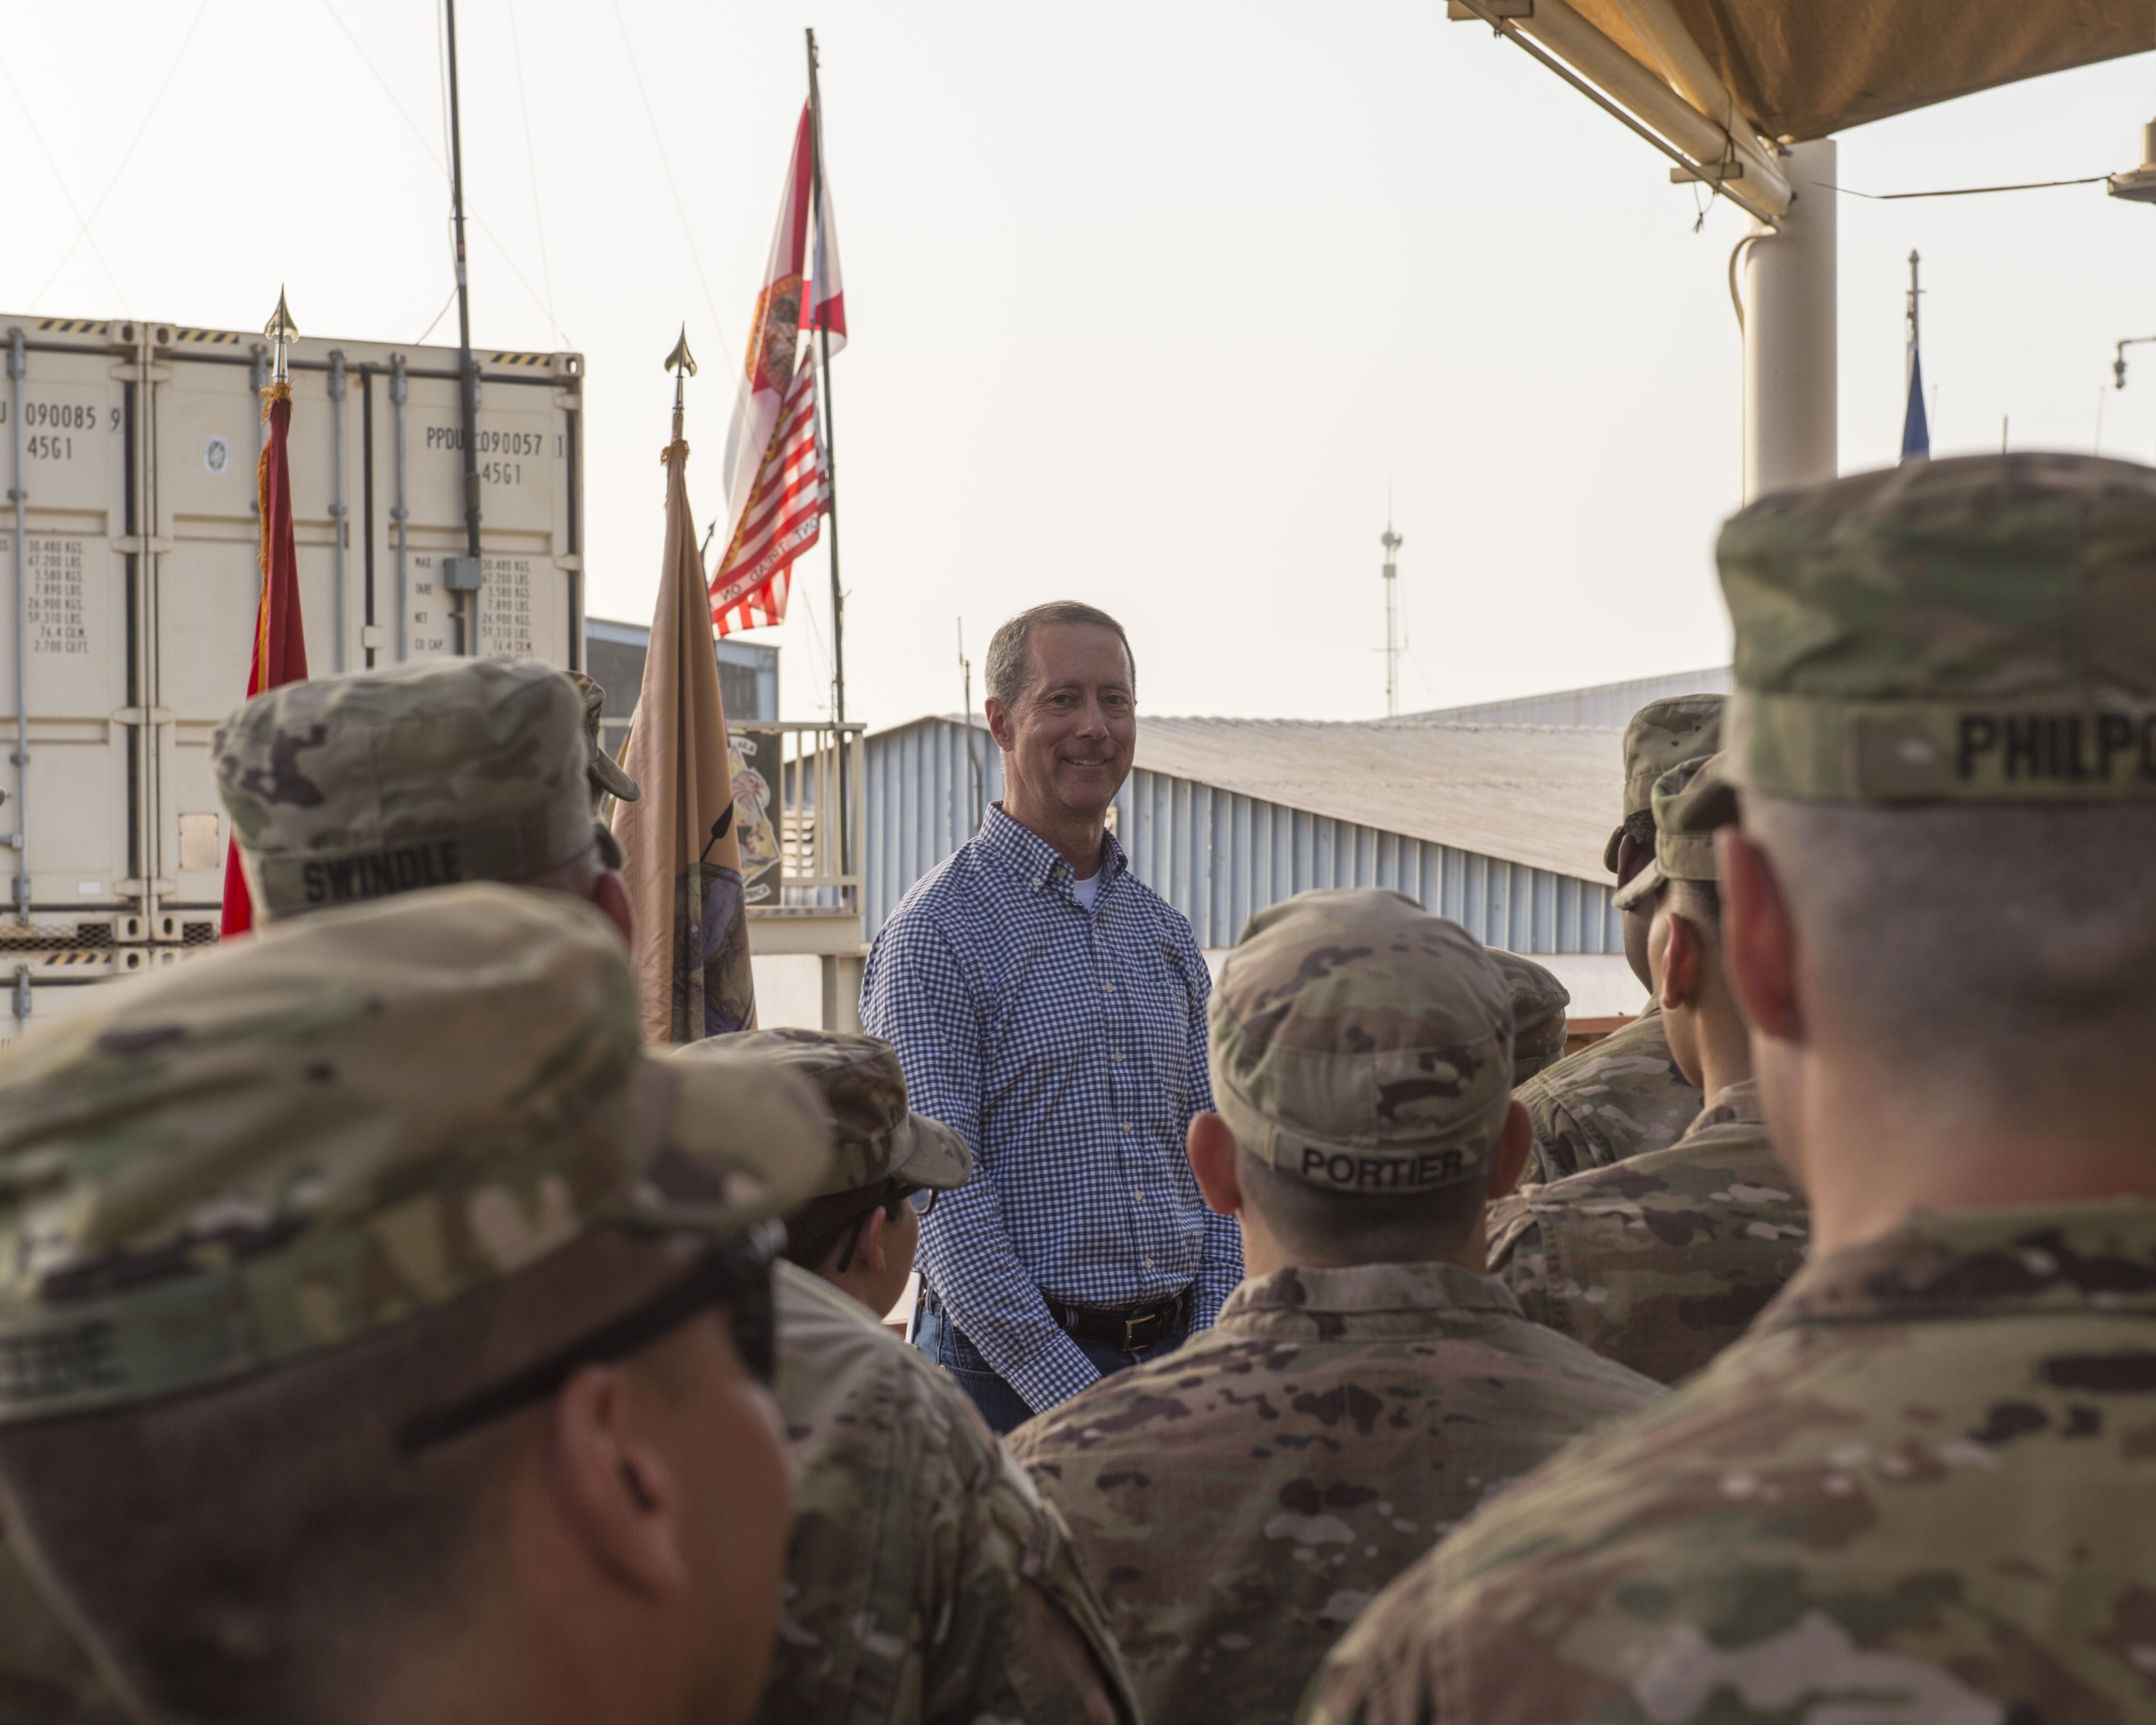 U.S. Rep. Mac Thornberry, 13th District of Texas, speaks with service members deployed to Camp Lemonnier, Djibouti, during a visit to the Combined Joint Task Force - Horn of Africa (CJTF-HOA) March 24, 2018. Thornberry, who is the U.S. House of Representatives Armed Services Committee Chairman, stopped by Camp Lemonnier before visiting other locations within the CJTF-HOA area of responsibility. The Armed Services Committee has the responsibility to oversee the Pentagon, all military services, and all Department of Defense agencies, including their budgets and policies. (U.S. Air Force photo by Staff Sgt. Timothy Moore)